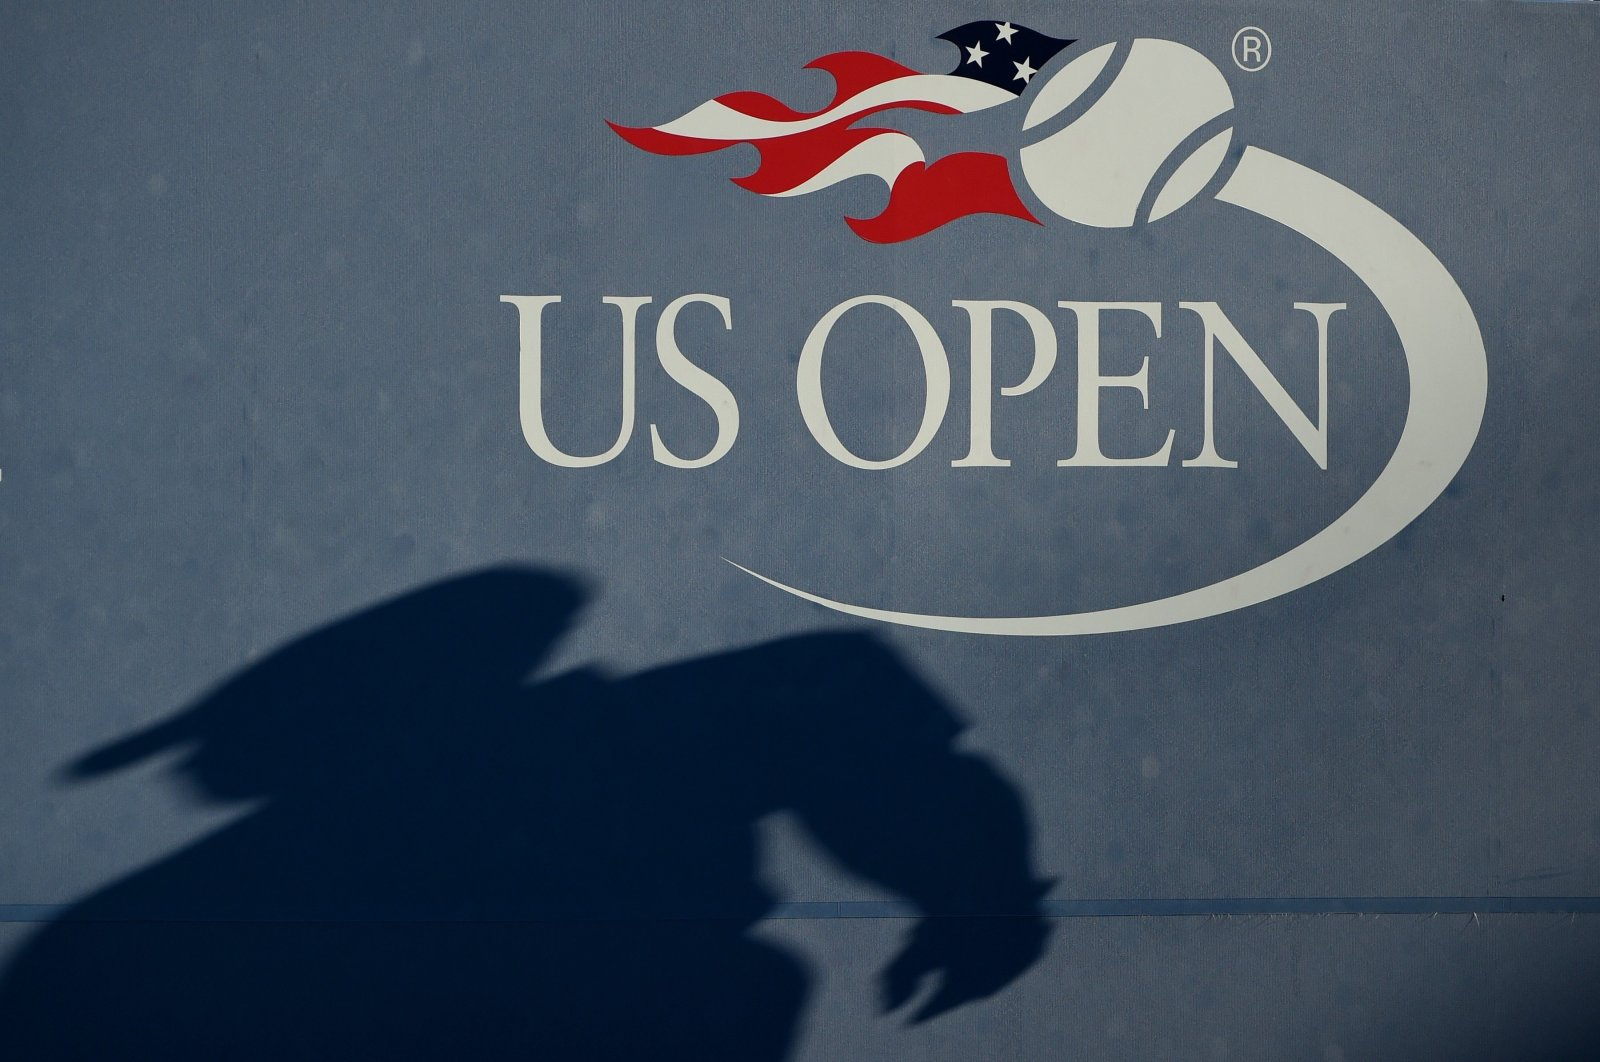 The U.S. Open logo is seen during a tennis match in New York City, New York, U.S., Sept. 3, 2016. (AFP Photo)